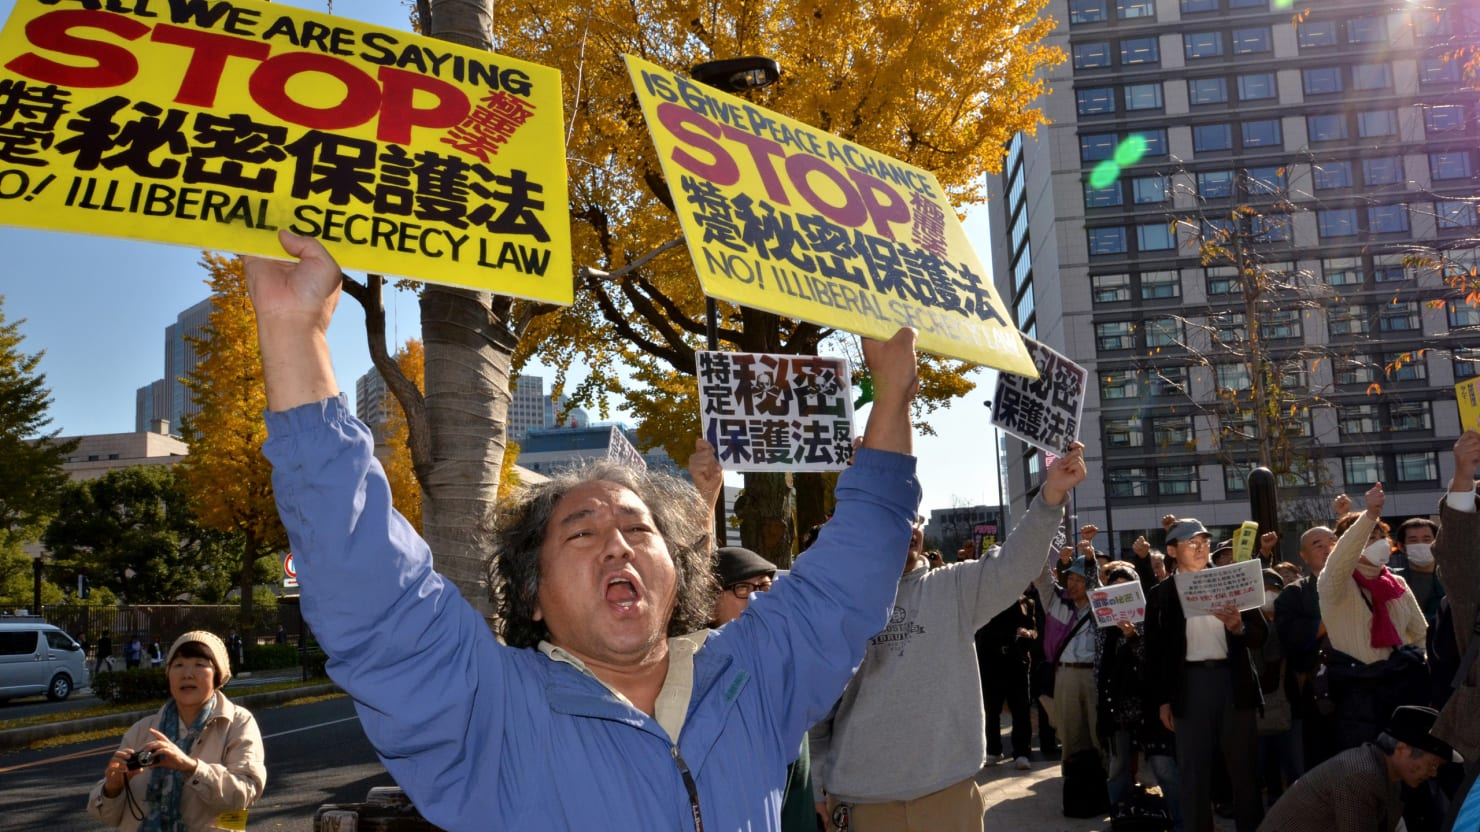 Japan's new Secrets Bill Threatens To Muzzle The Press and Whistleblowers